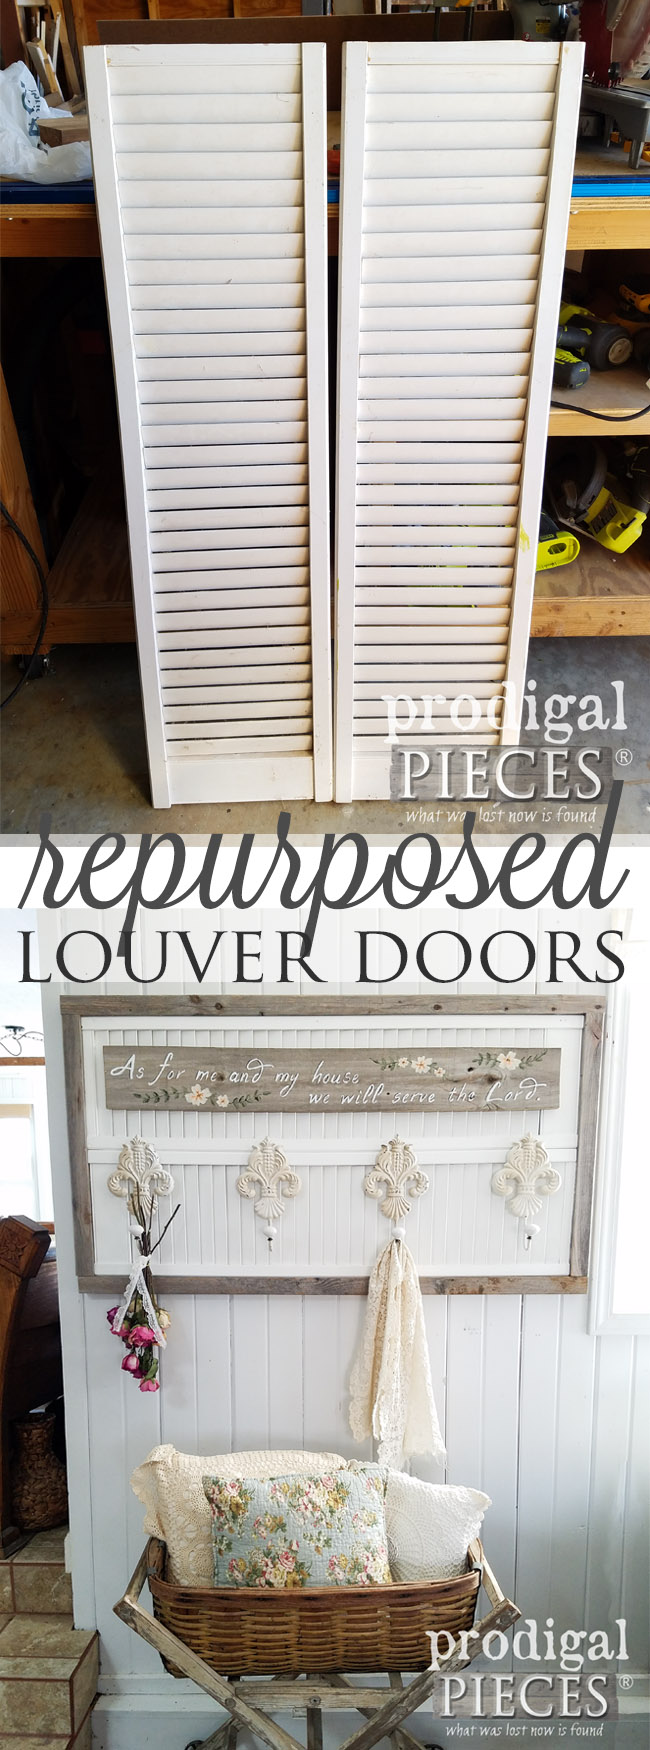 Upcycled Louver Door Corner Cabinet Prodigal Pieces